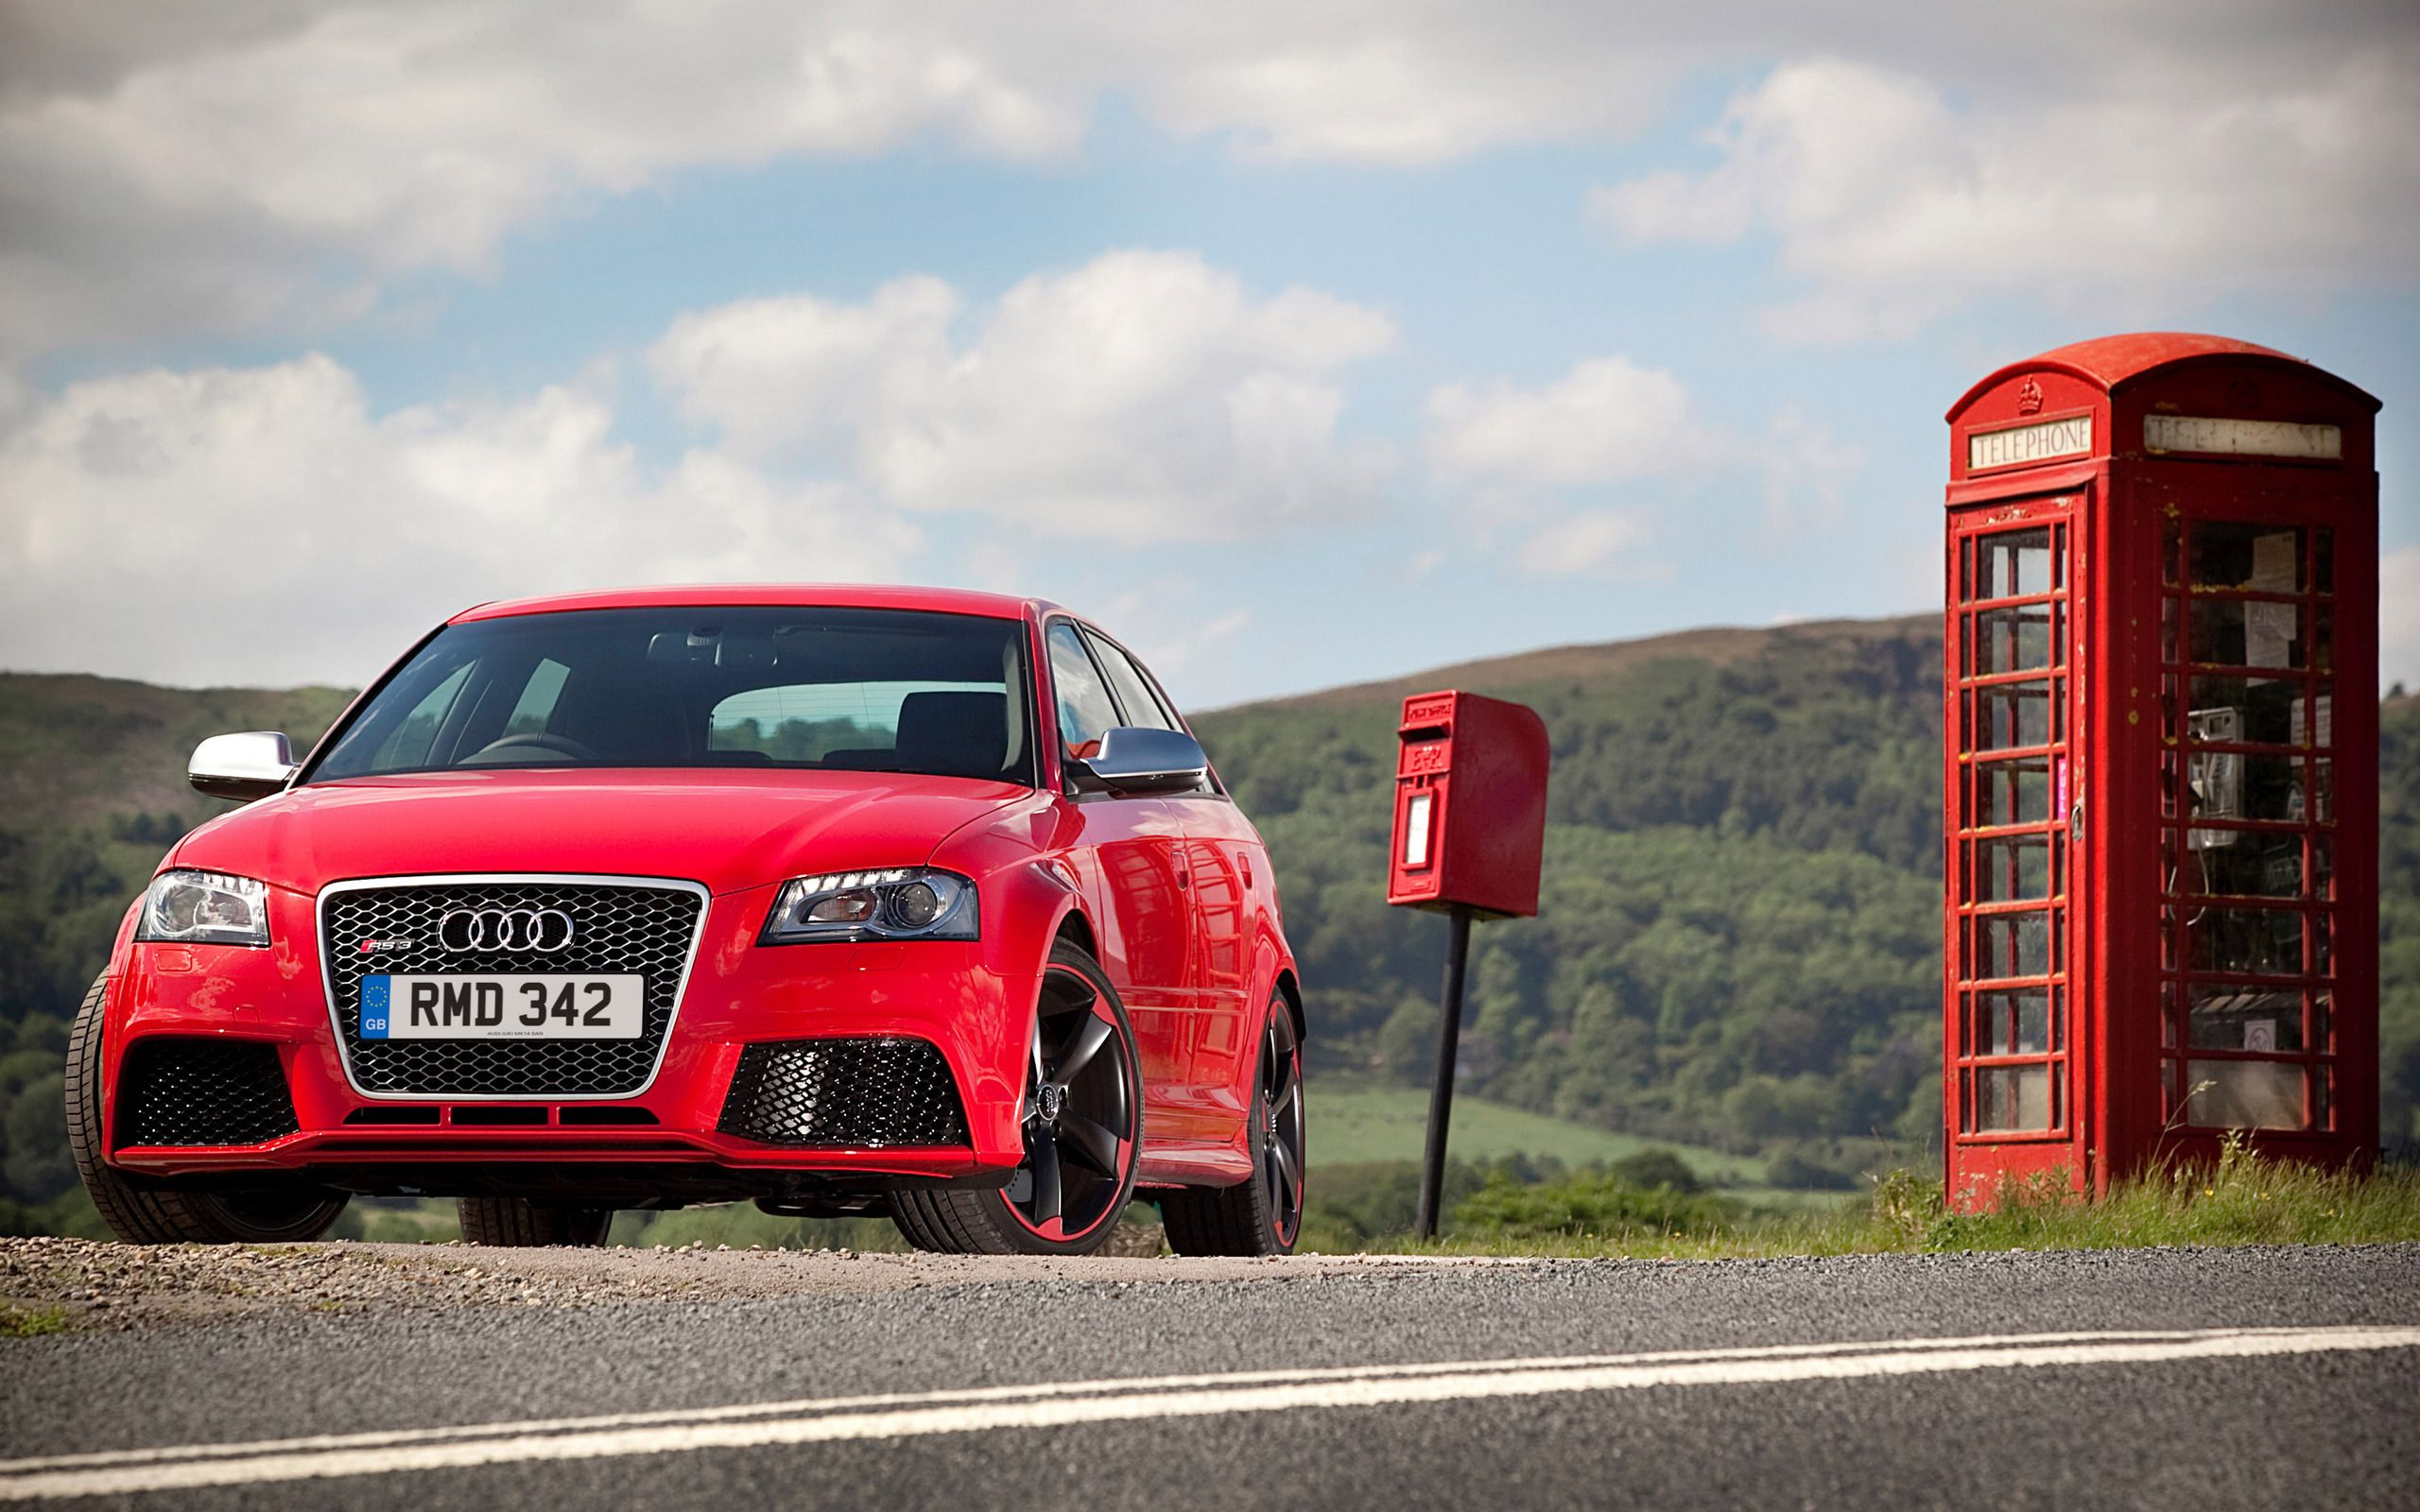 Audi RS3 Sportback wallpapers and image